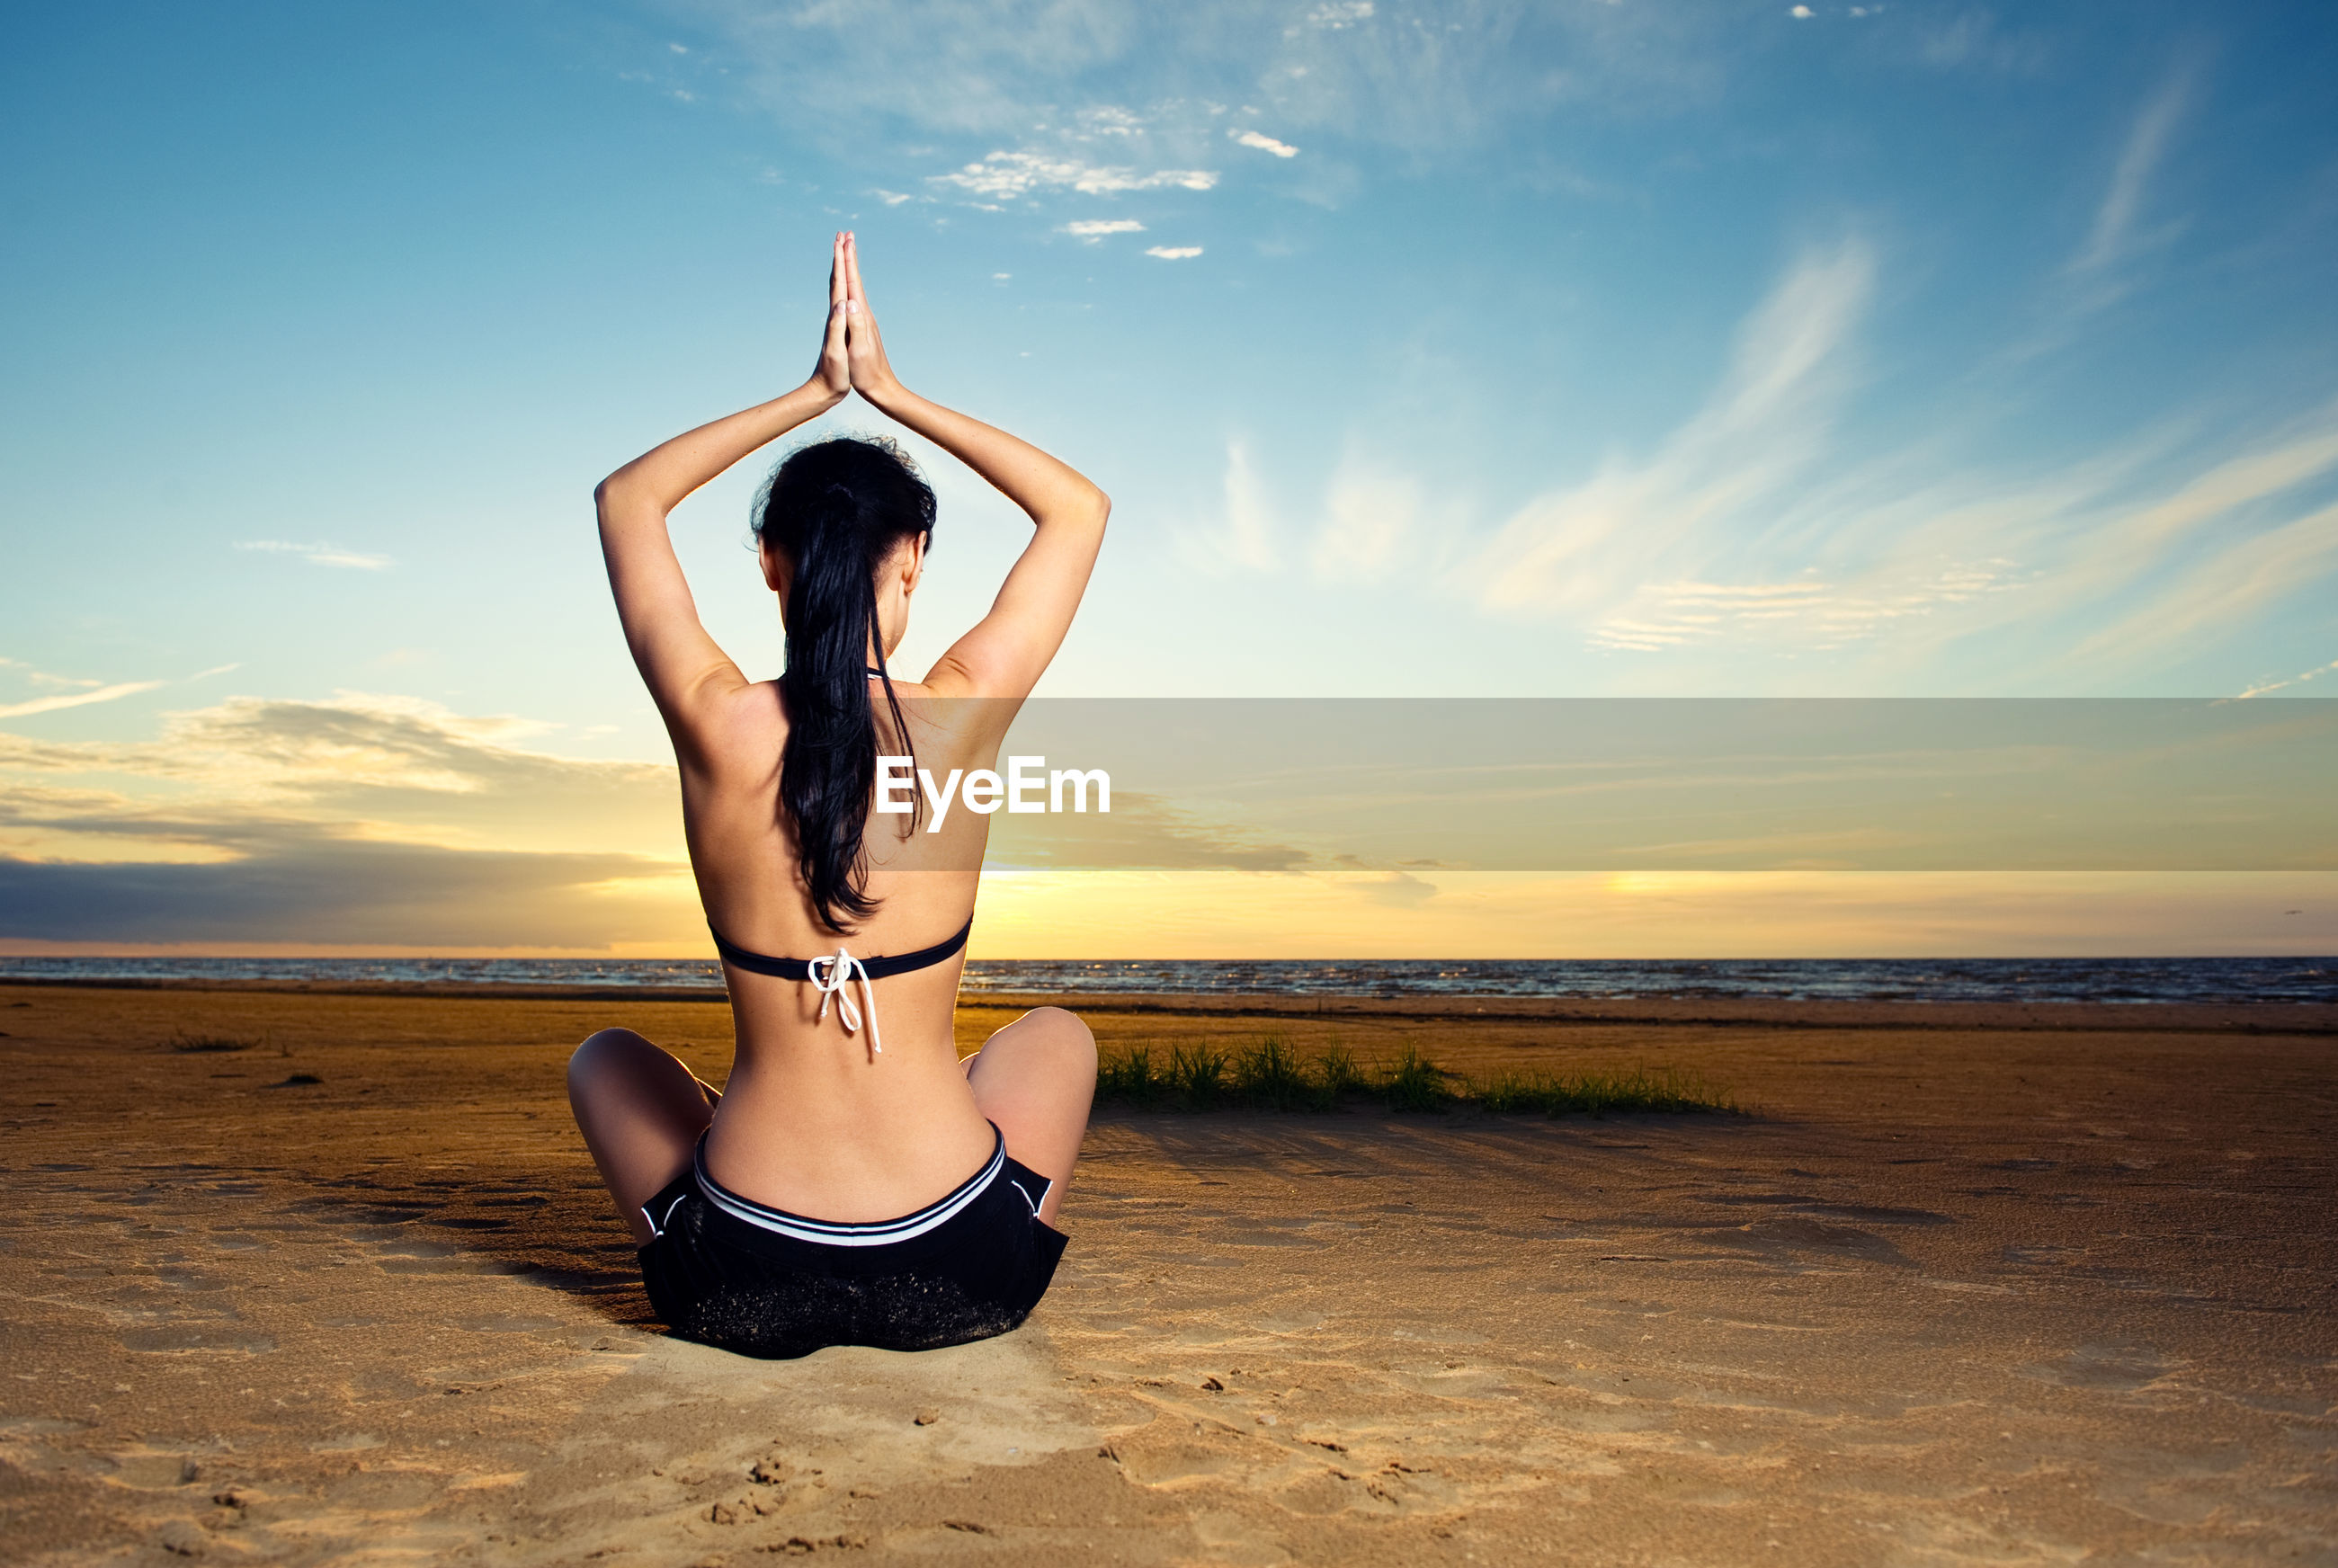 Woman practicing yoga at beach during sunset